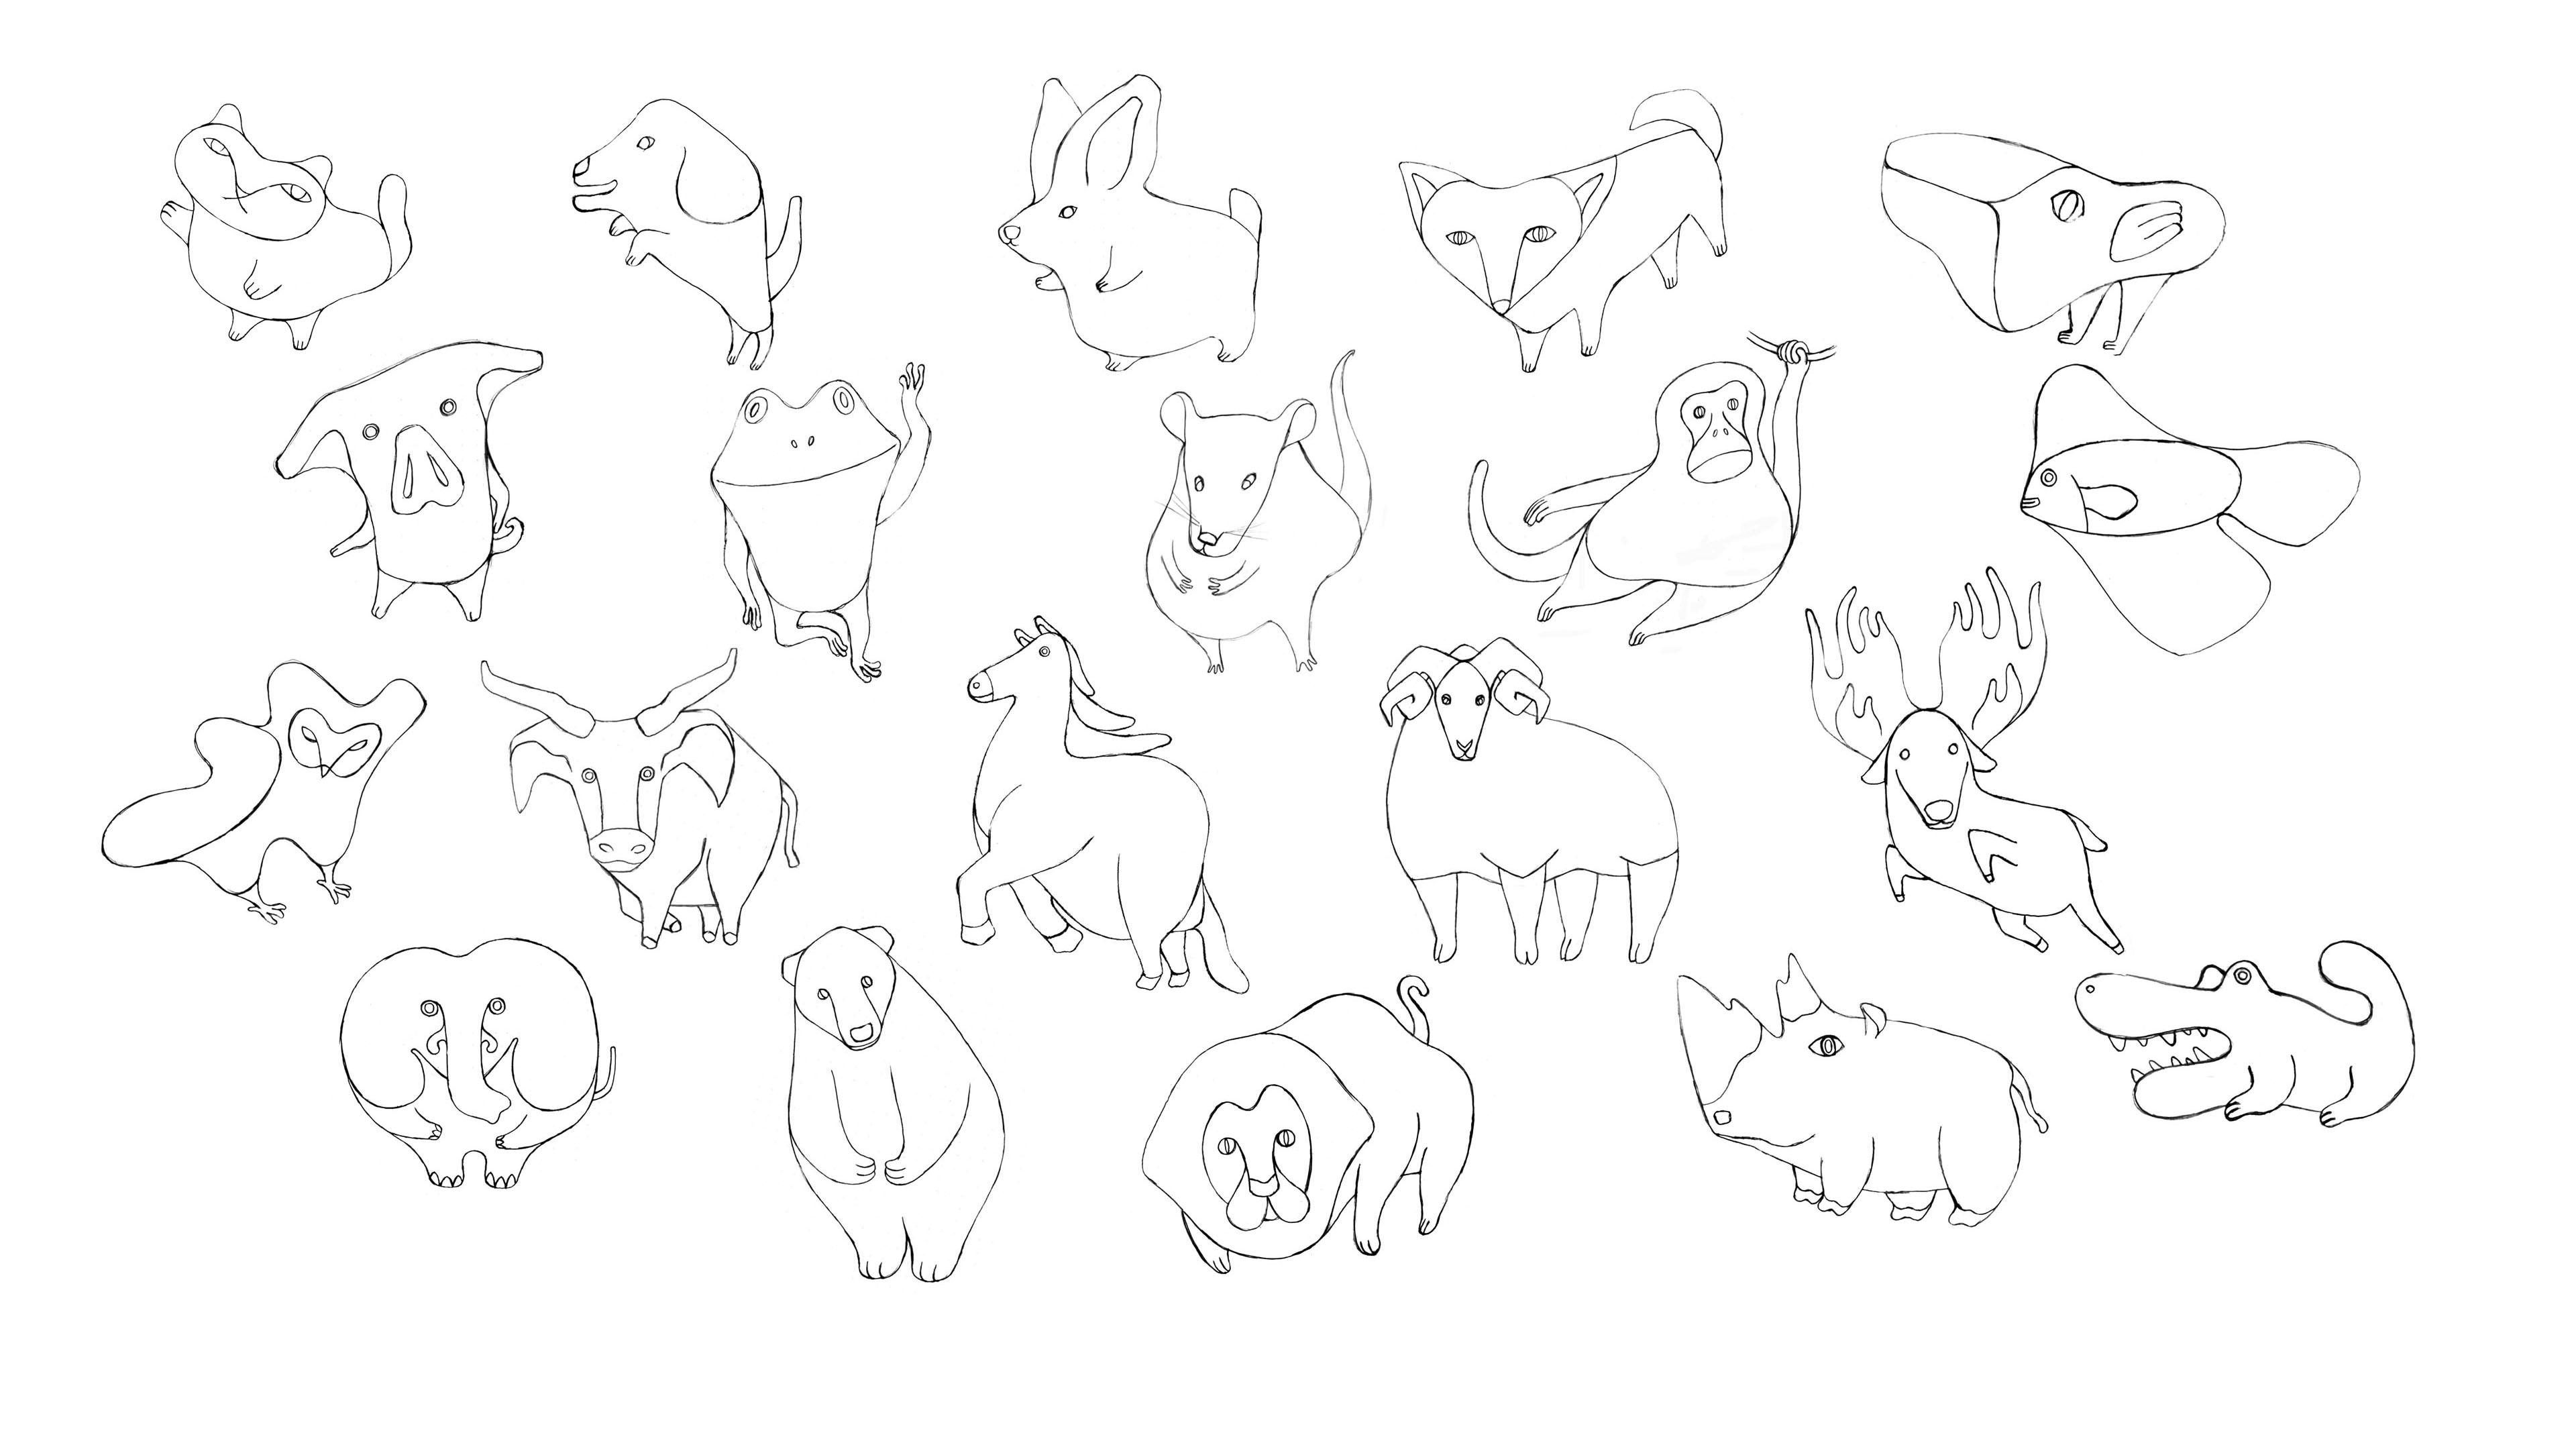 Character Doodle: Draw A Unique Animal Character in Simple